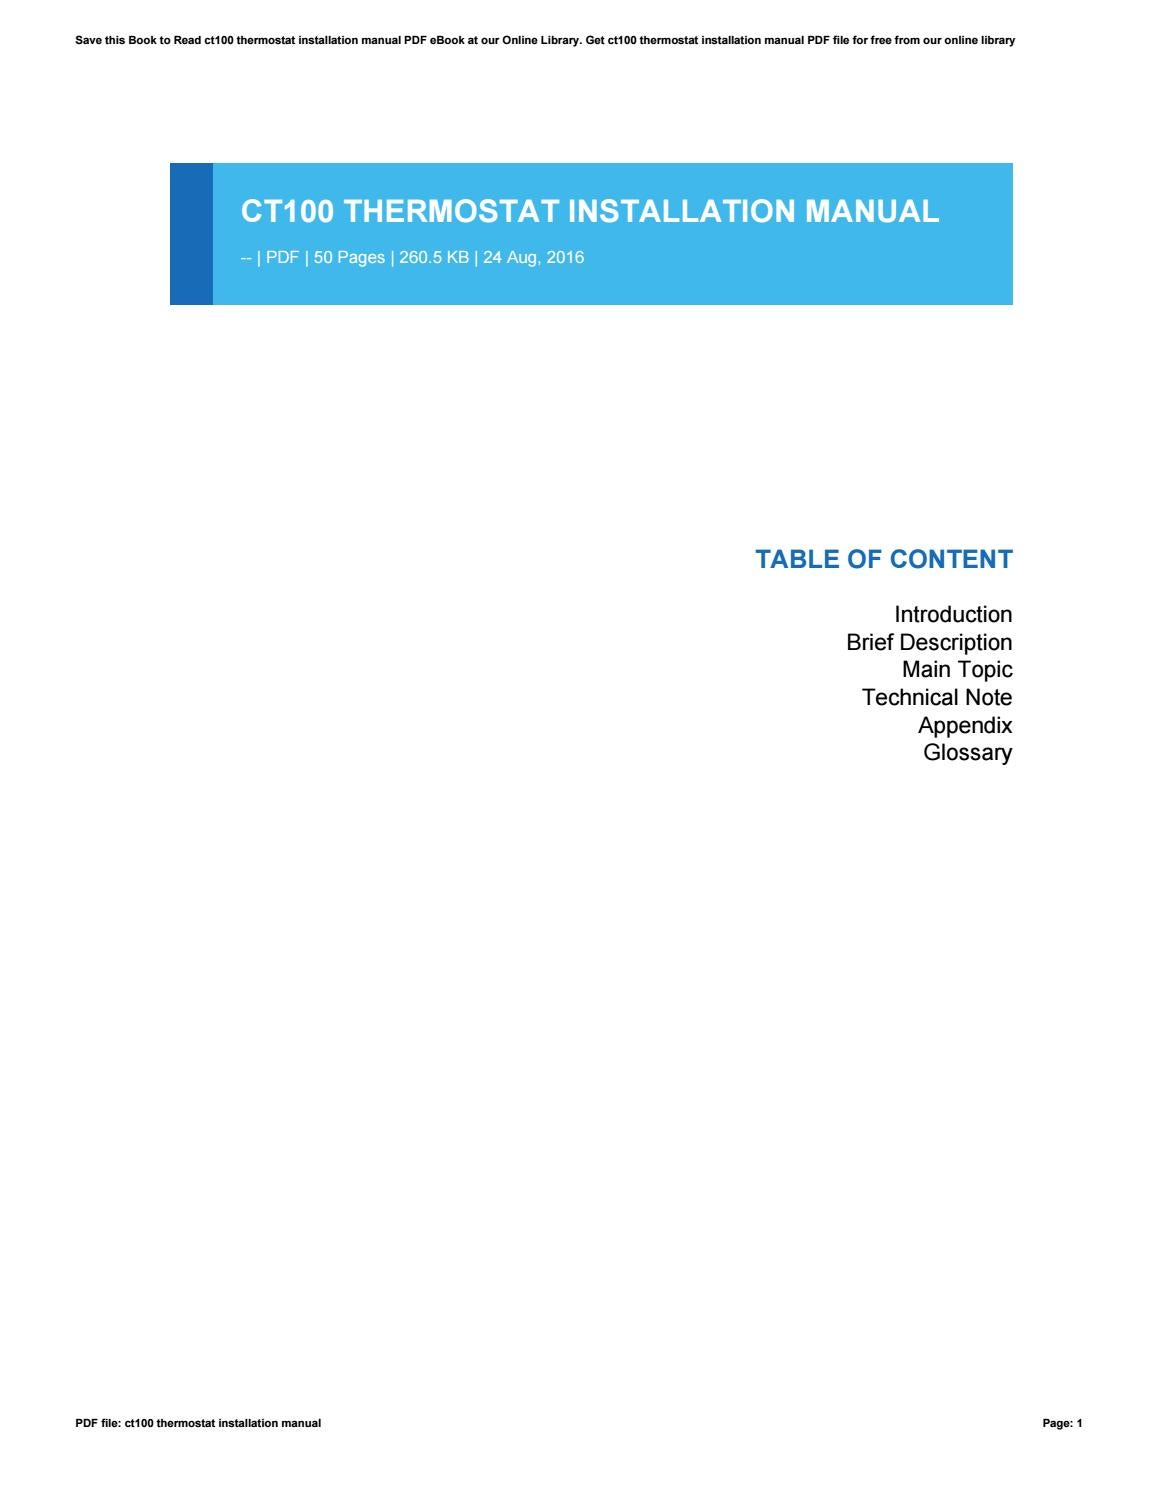 Ct100 Thermostat Installation Manual One Word Quickstart Guide Book Wiring Diagram By Resman76andar Issuu Rh Com Install User